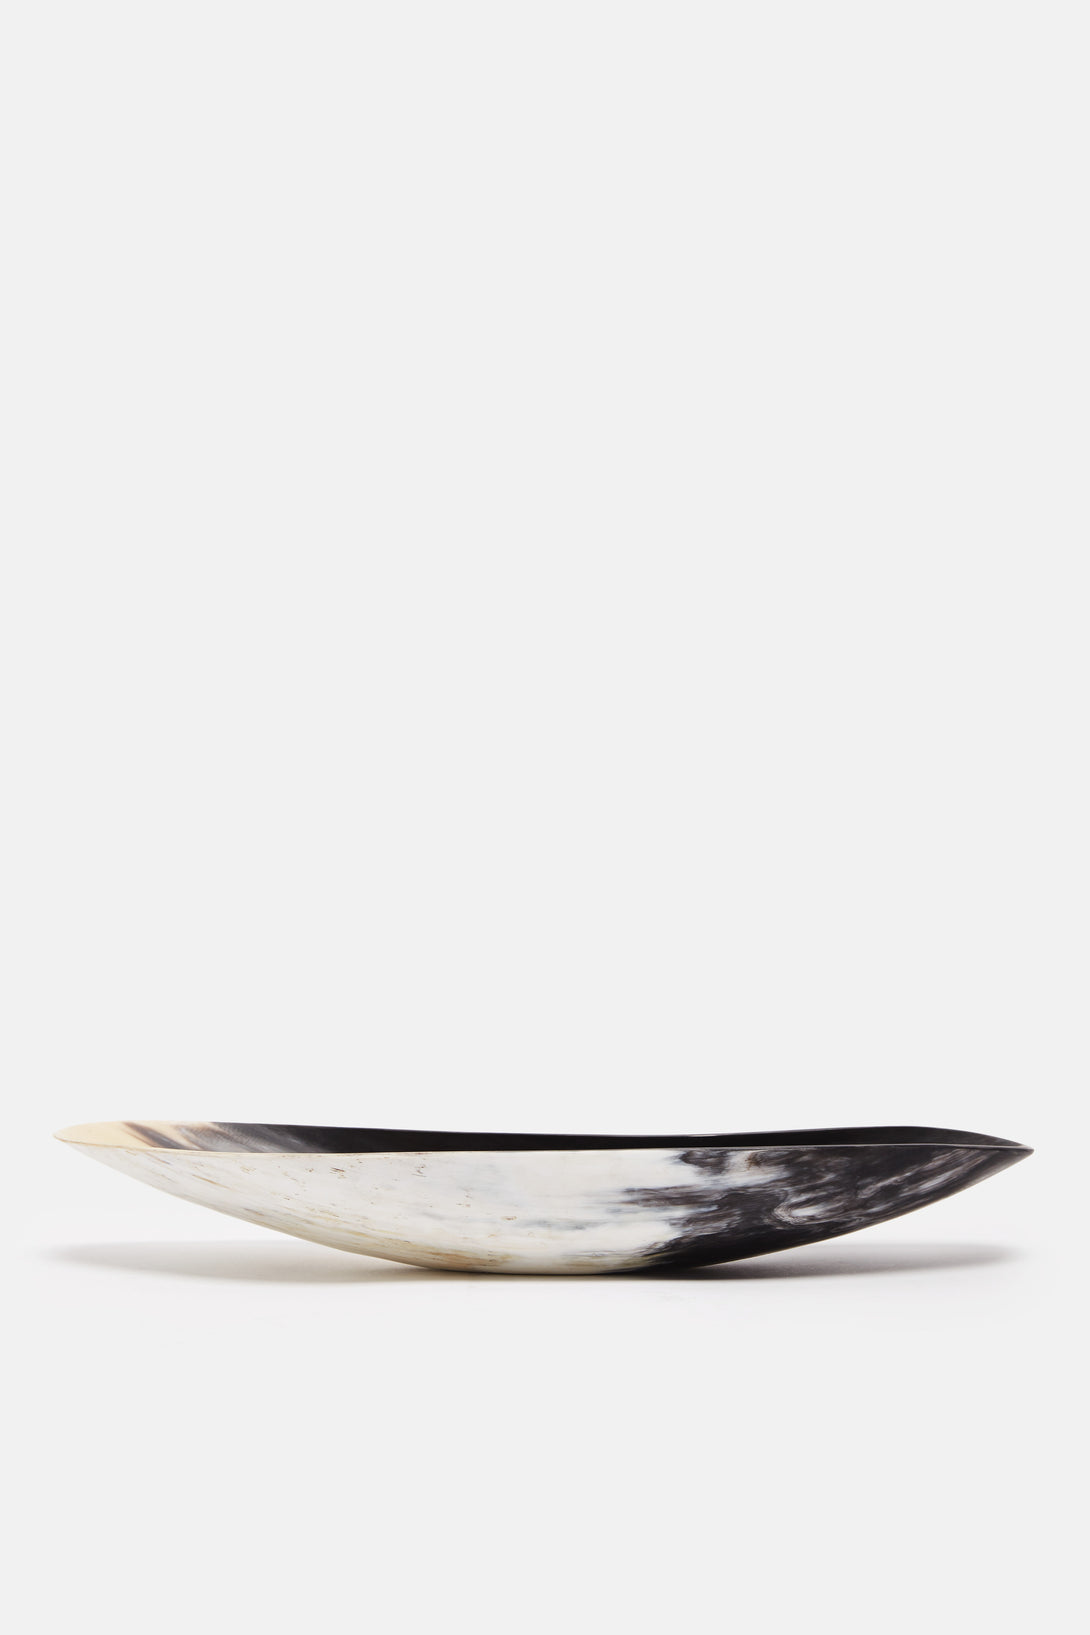 African Horn Oblong Vessel - Black